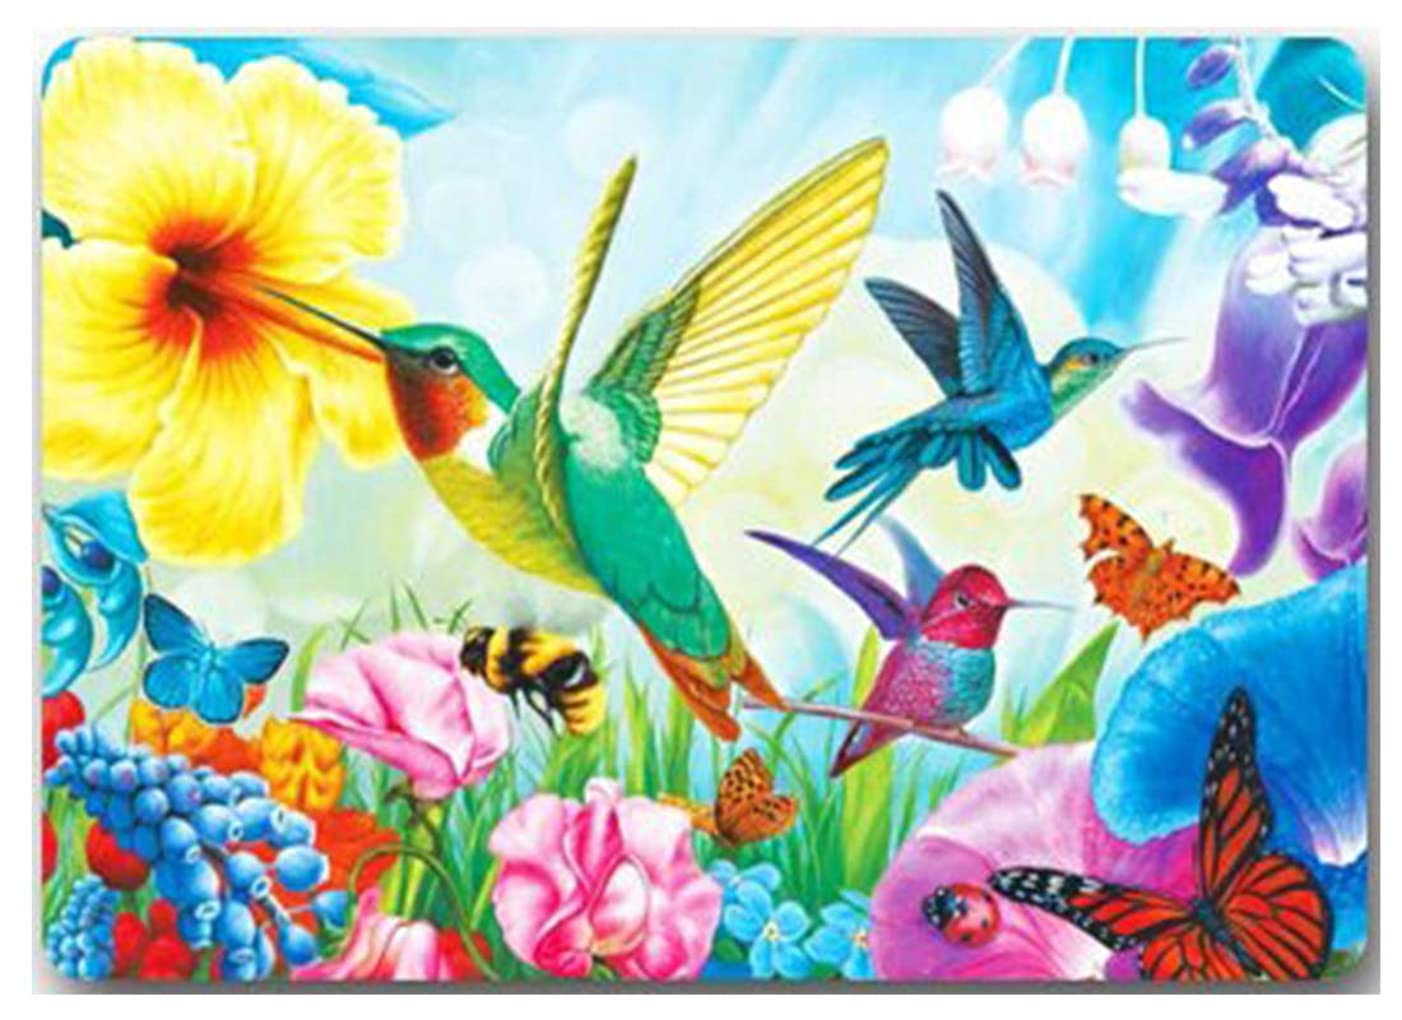 Twuky 5D Diamond Painting Kits Full Drill Diamond Embroidery-Home Decoration Process-Hummingbird(30X40CM/12X16inch)